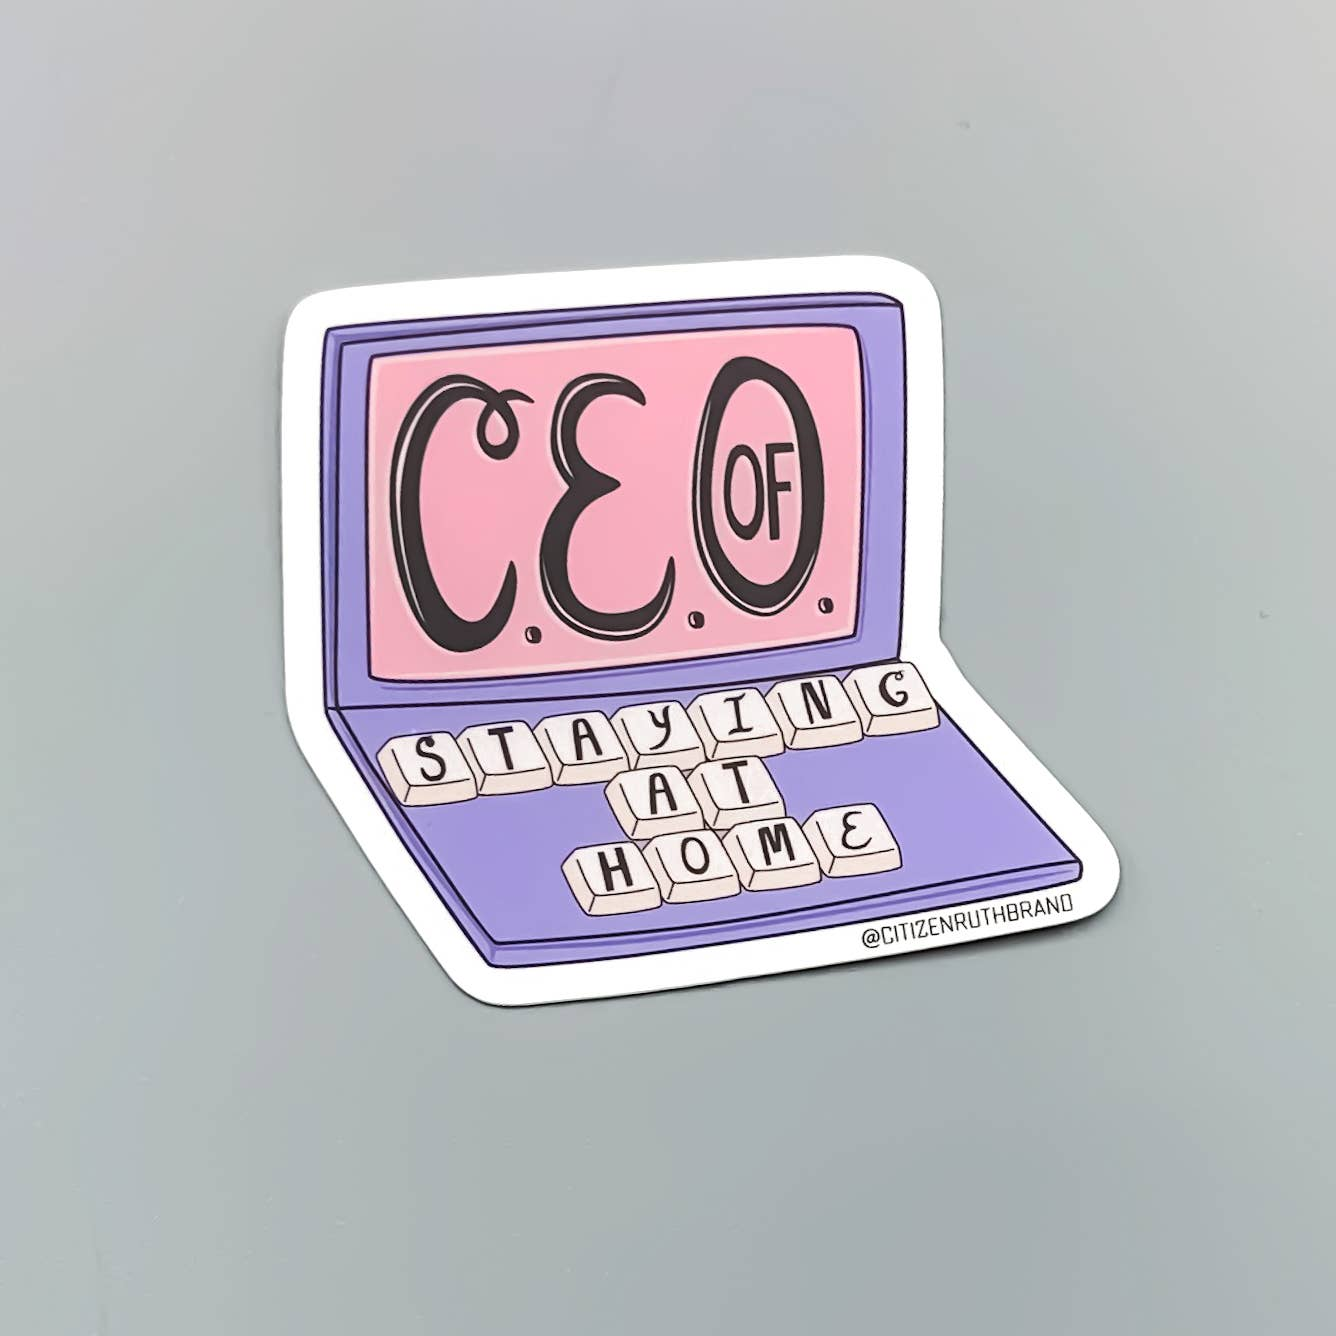 Citizen Ruth: CEO of Staying at Home Sticker